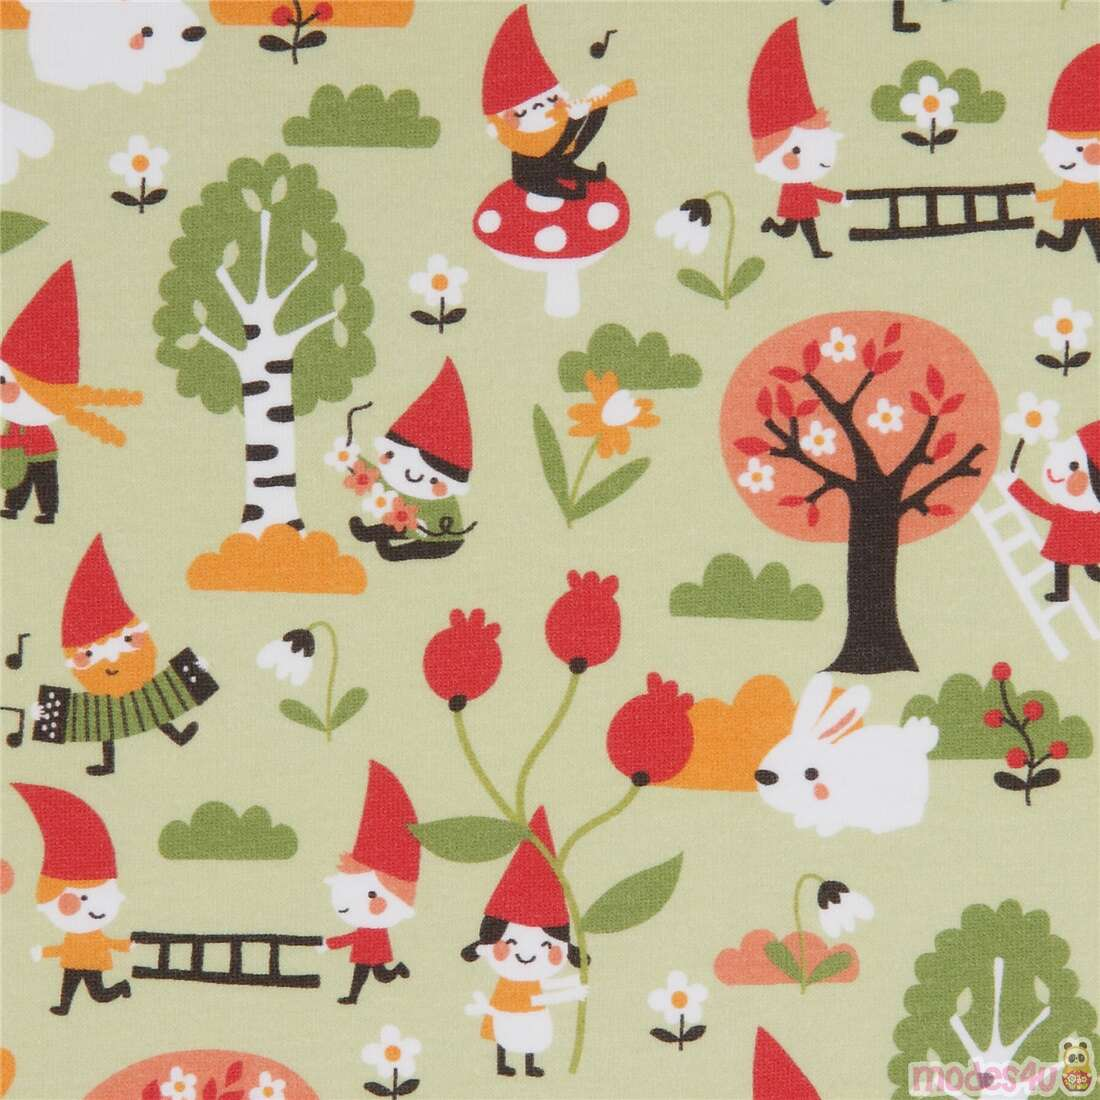 light green organic jersey knit fabric with small garden gnomes by Lillestoff 232630 1